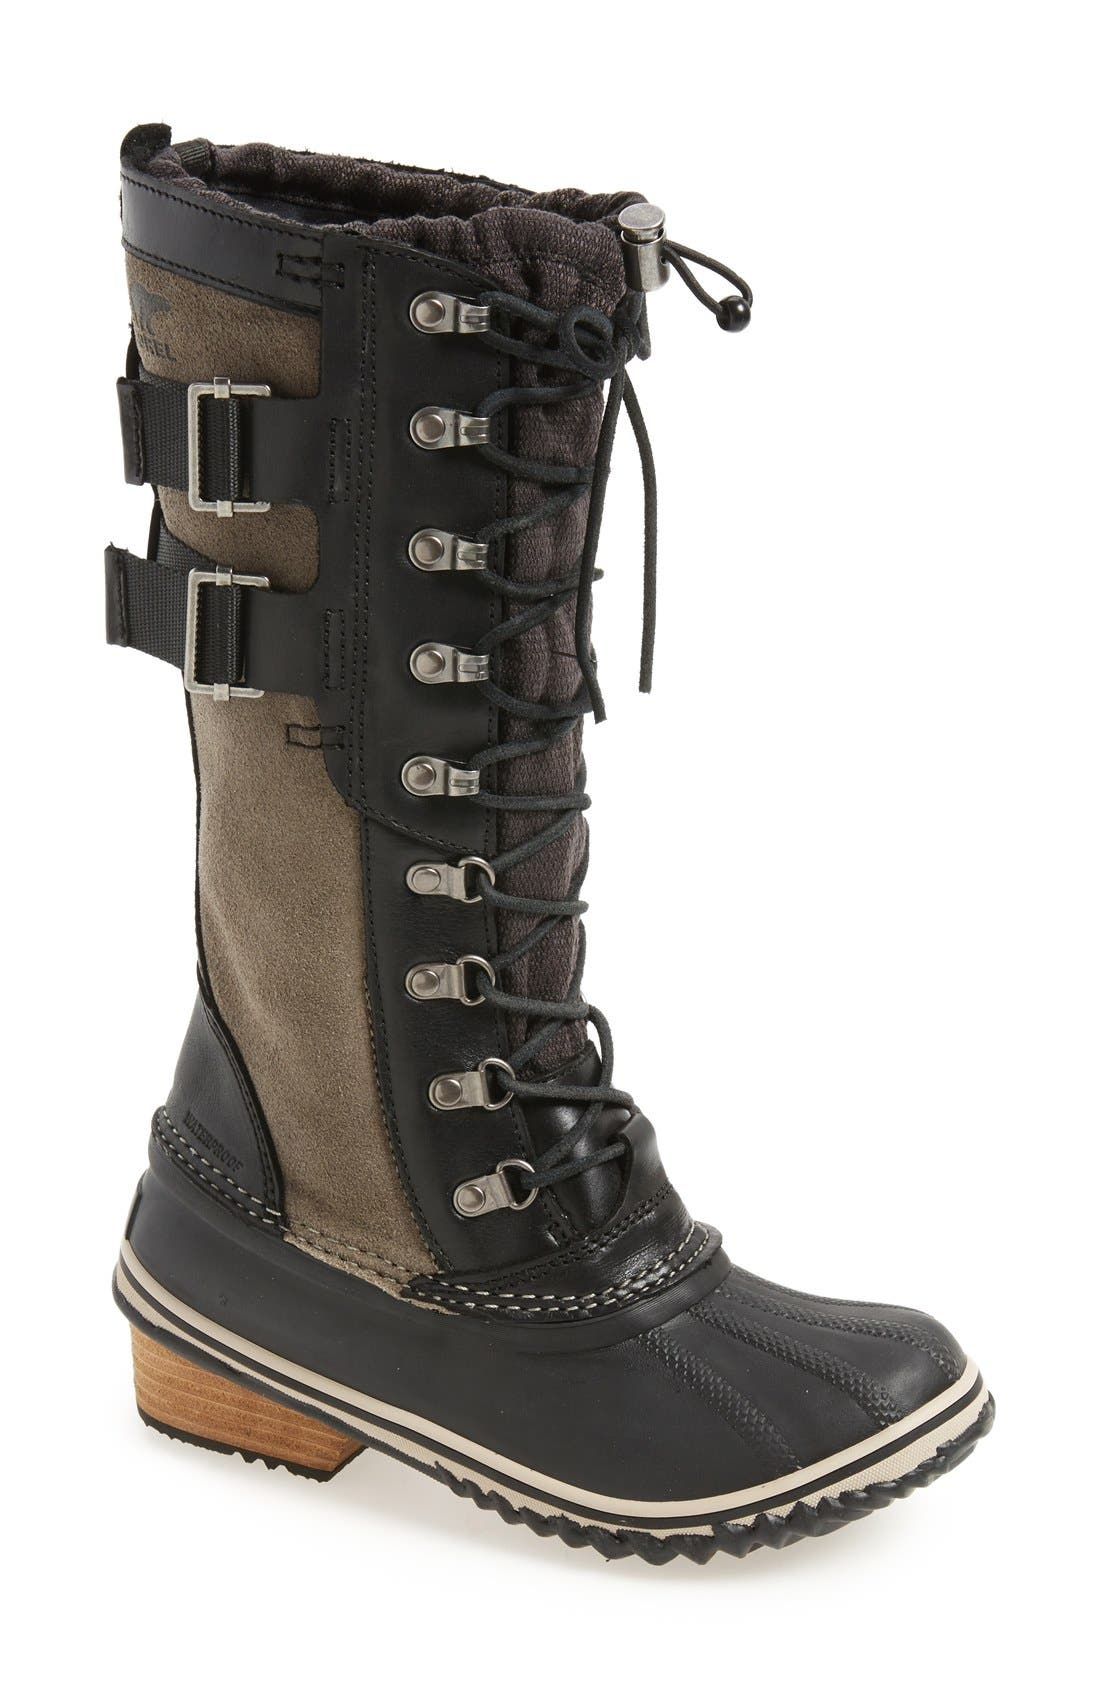 'Conquest Carly II' Waterproof Mid Calf Boot,                             Main thumbnail 1, color,                             010